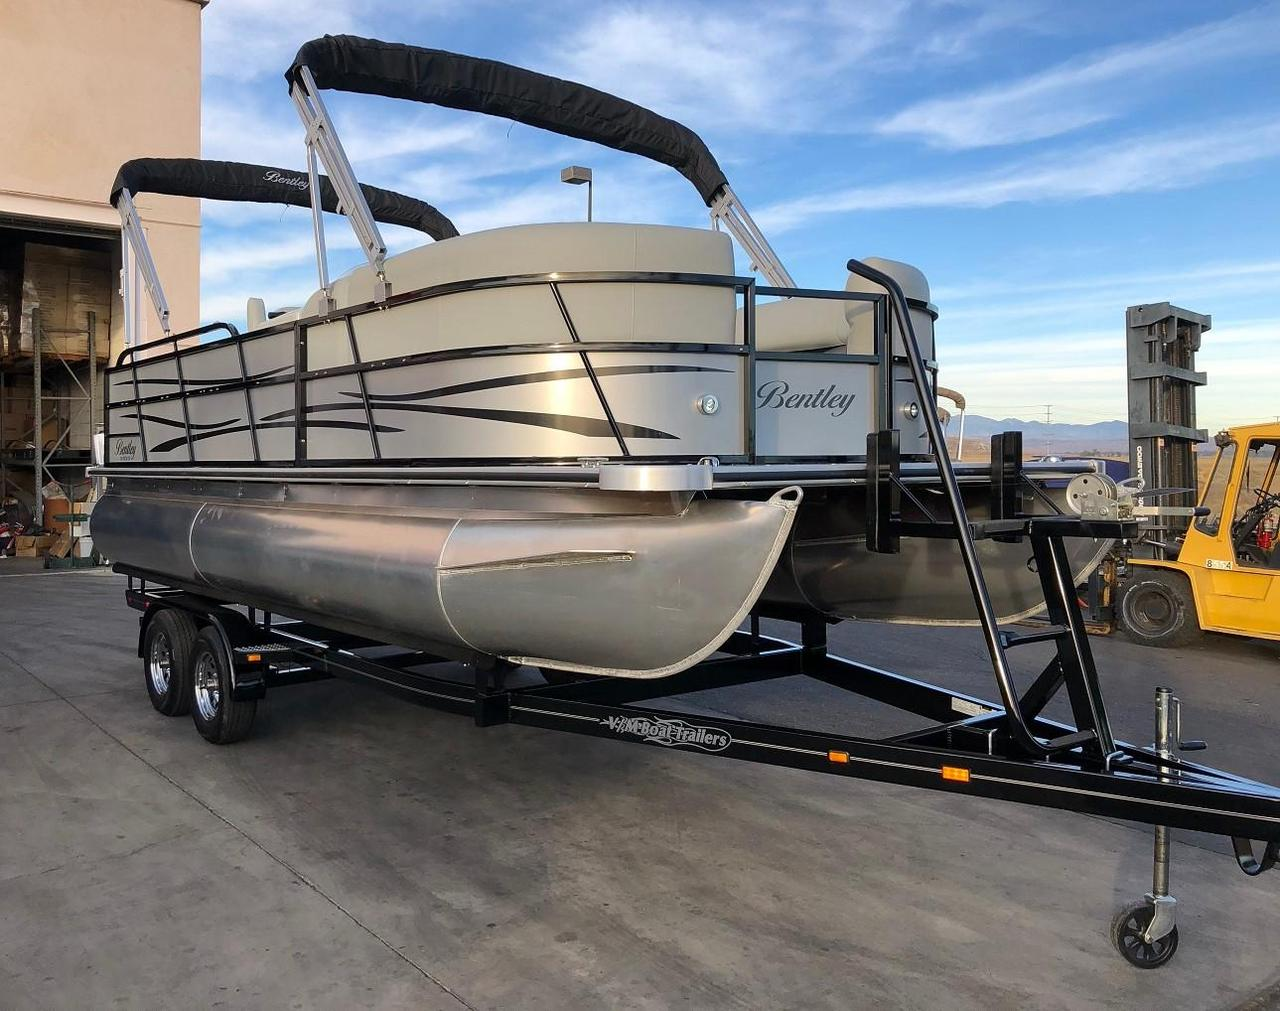 shipping to bentley cost resize b path dealers power services boats boat pontoon ship